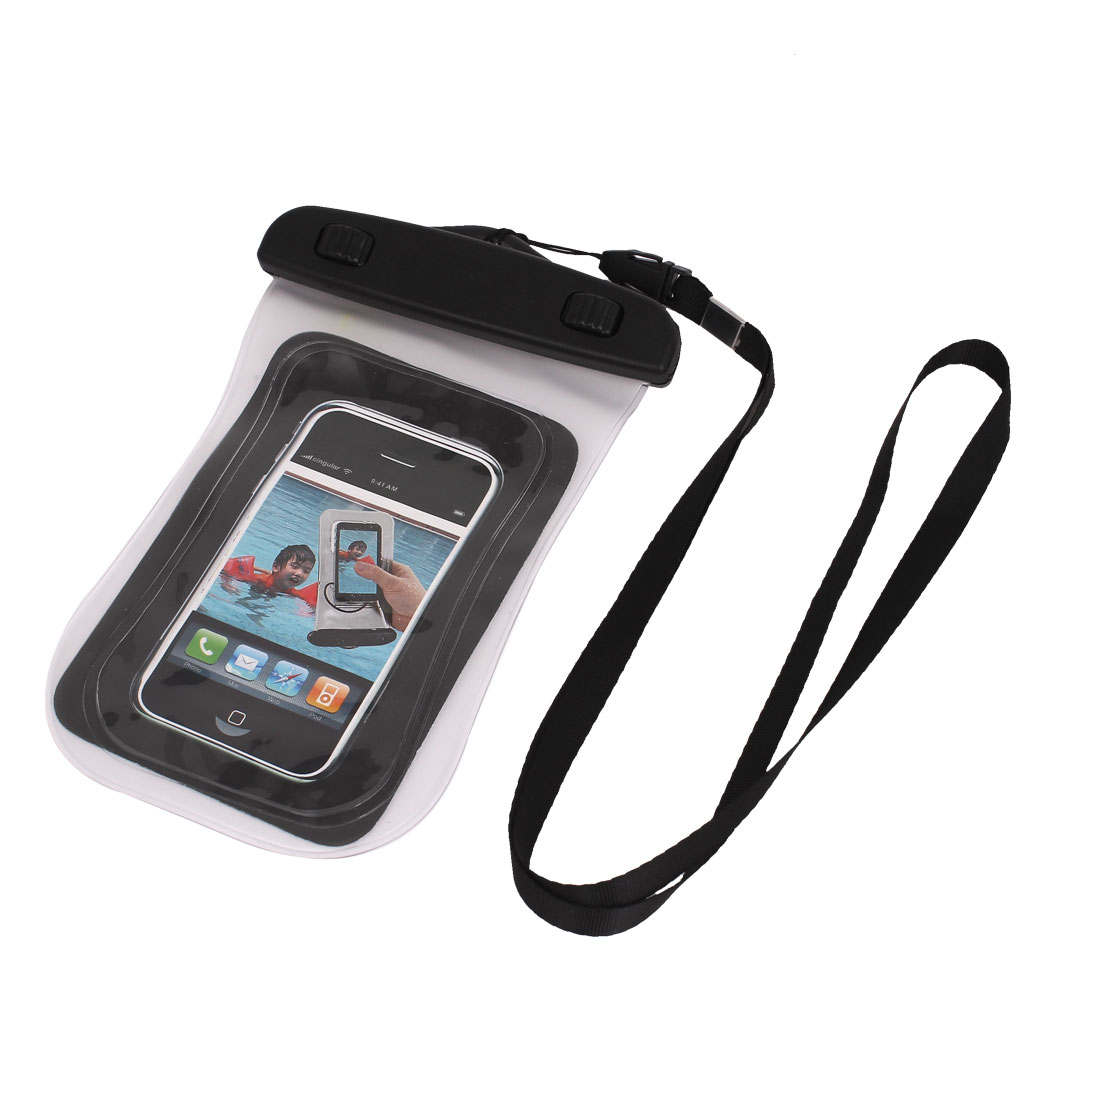 "Waterproof Bag Case Holder Protector Clear w Neck Strap for 4.5"" Cell Phone"